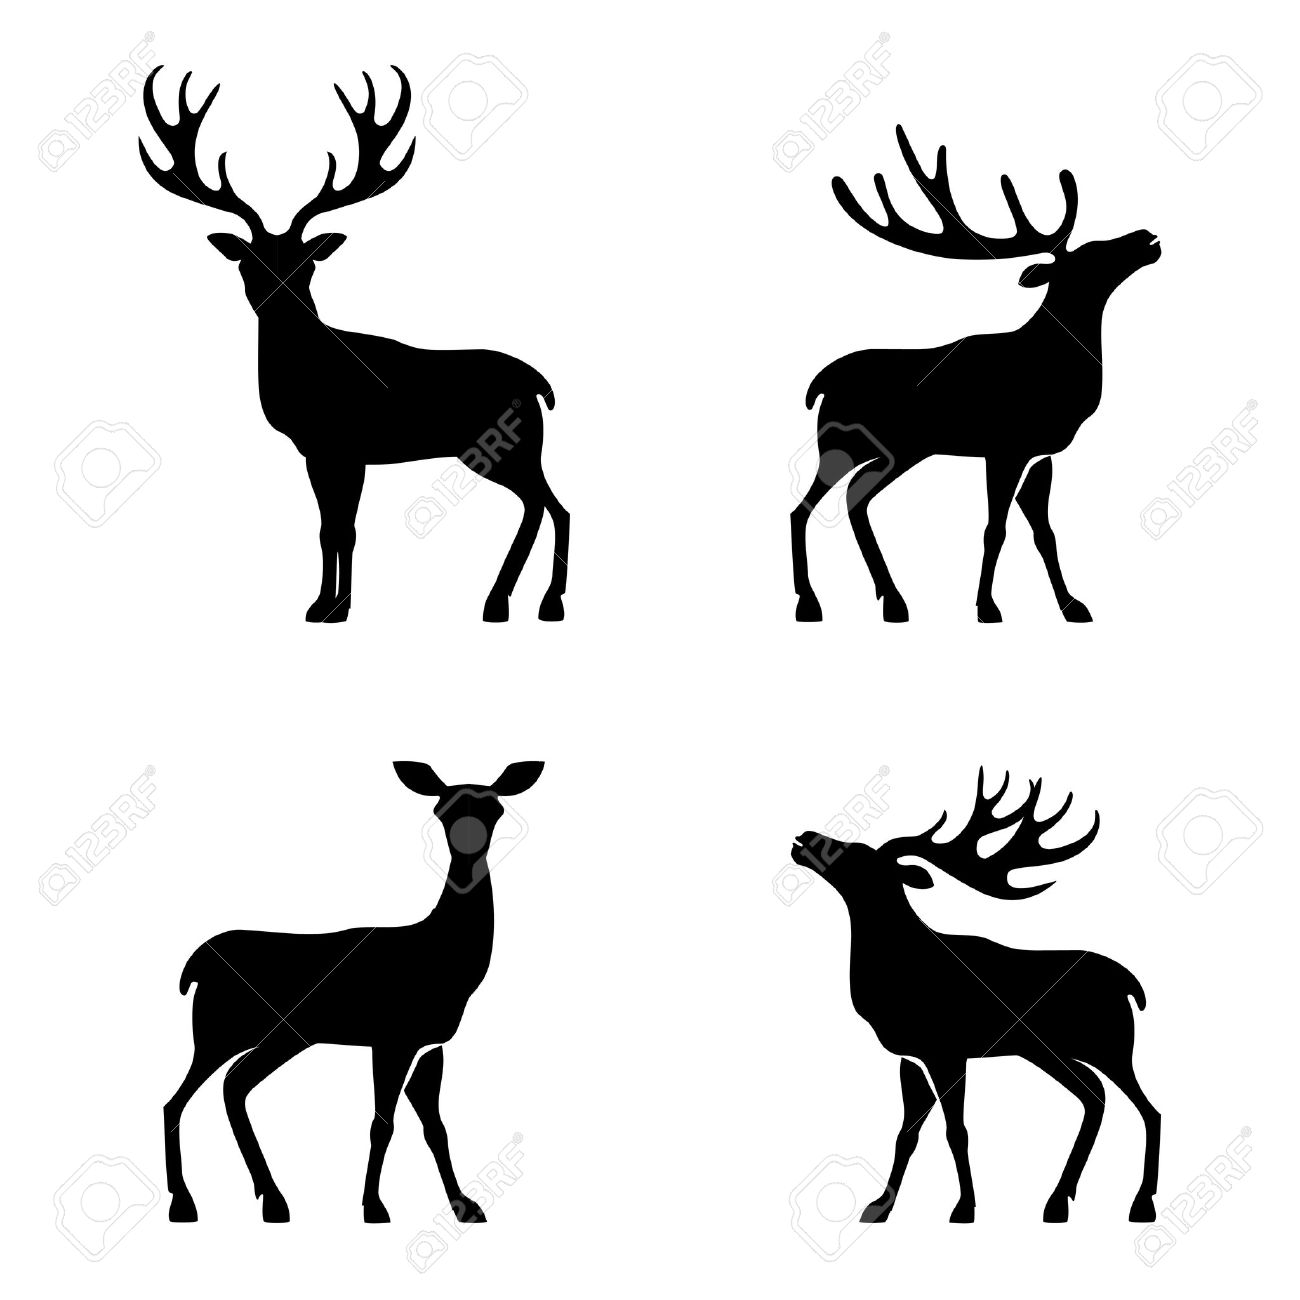 Vector illustration of collection of deers silhouette - 33235750